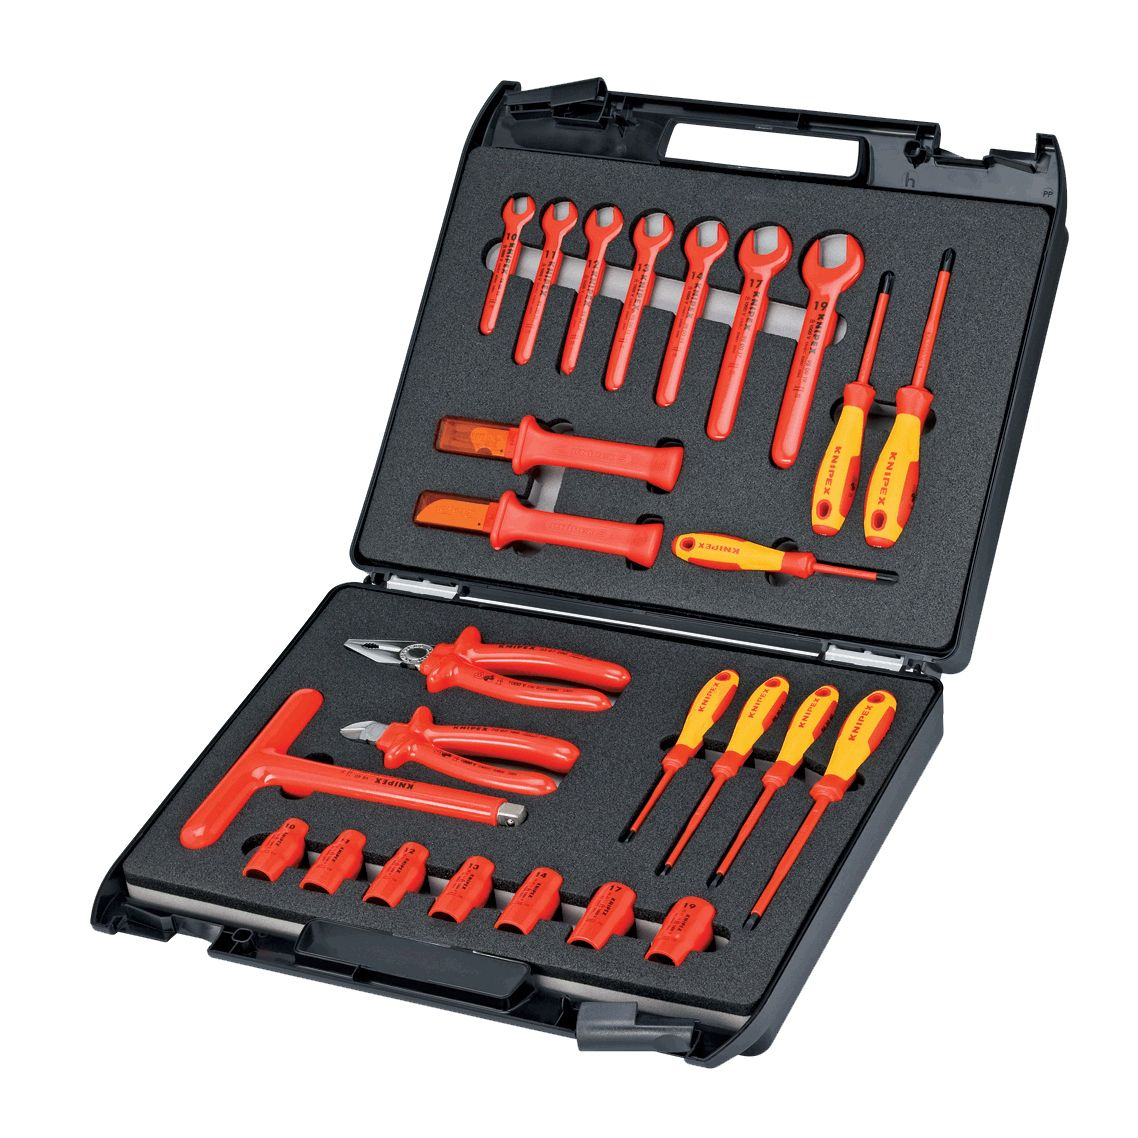 Knipex 98 99 12 26 Pc Standard Tool Kit 1 000v Insulated In Case Tool Kit Tools Tool Storage